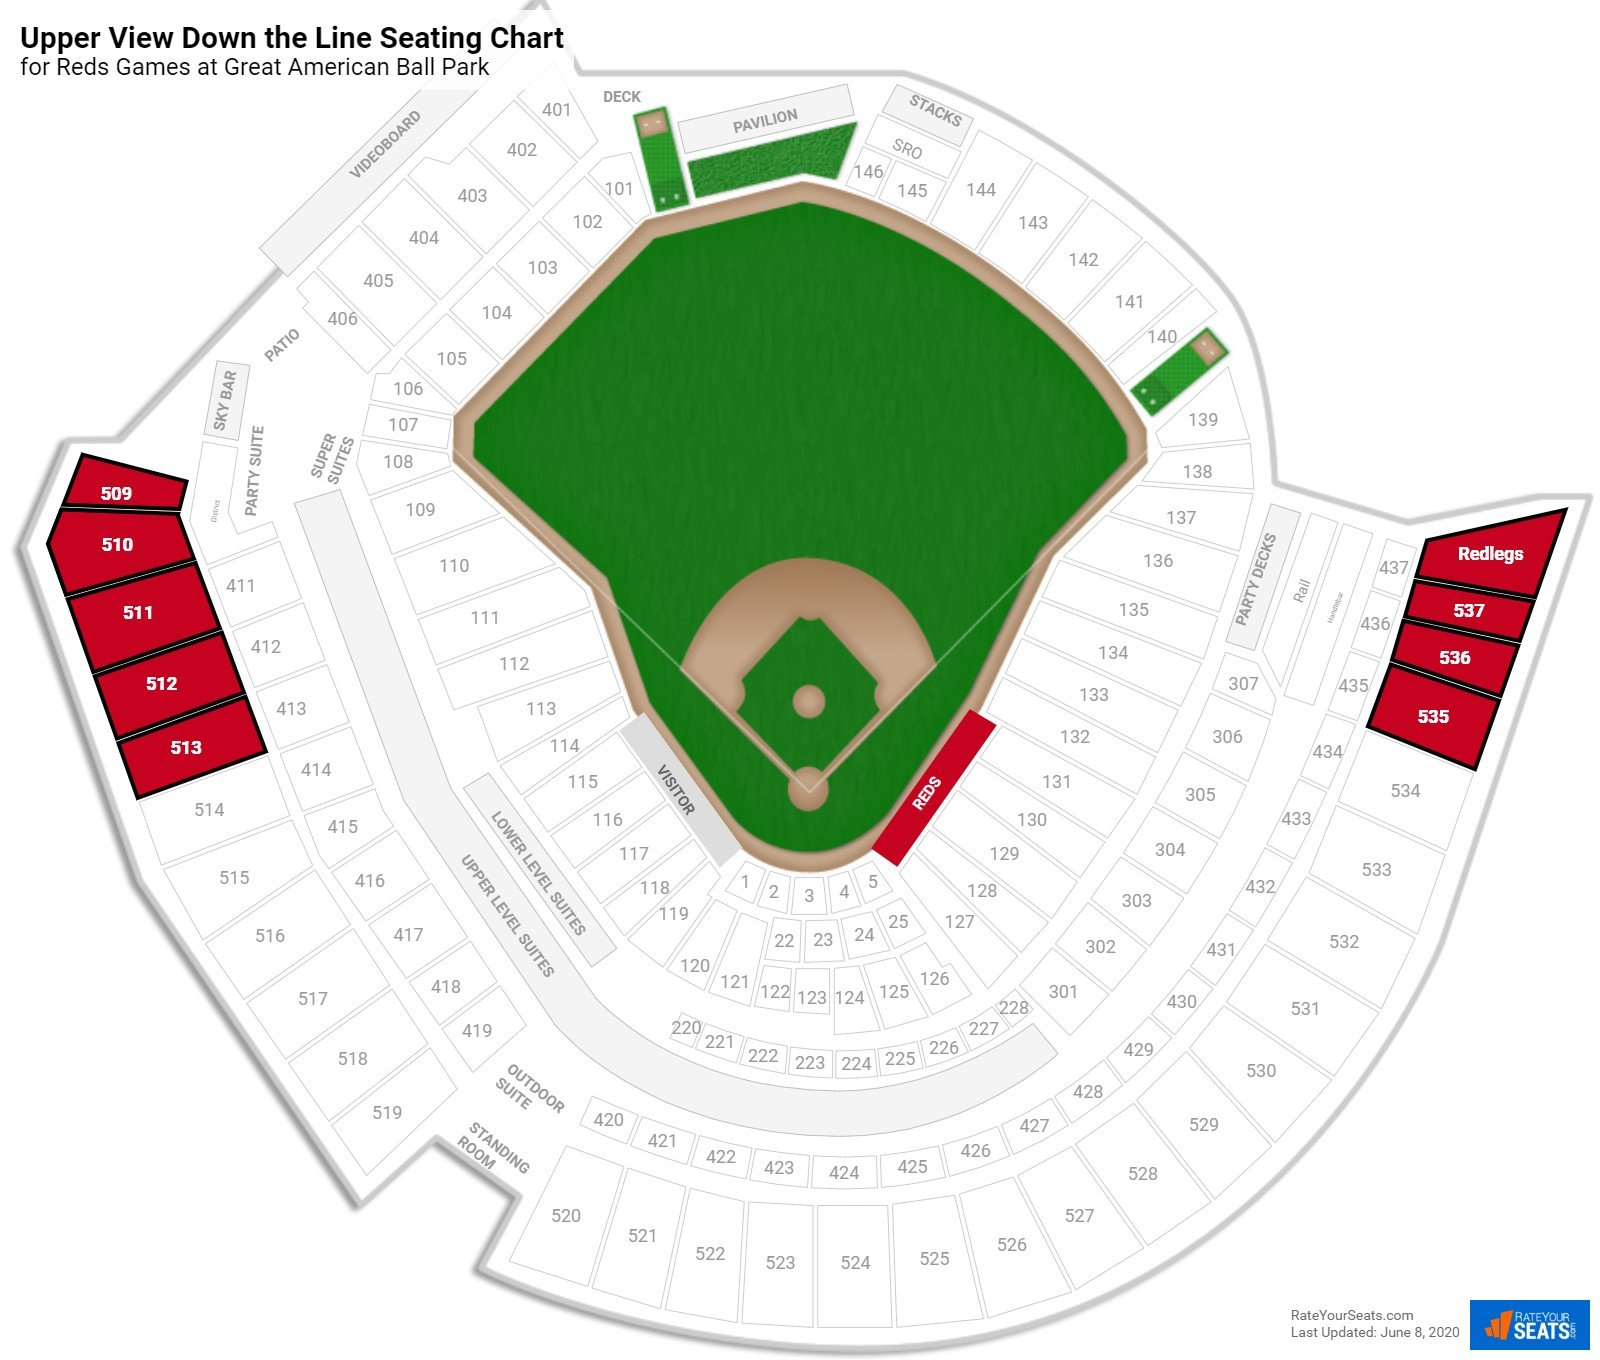 Great American Ball Park Upper View Down the Line seating chart